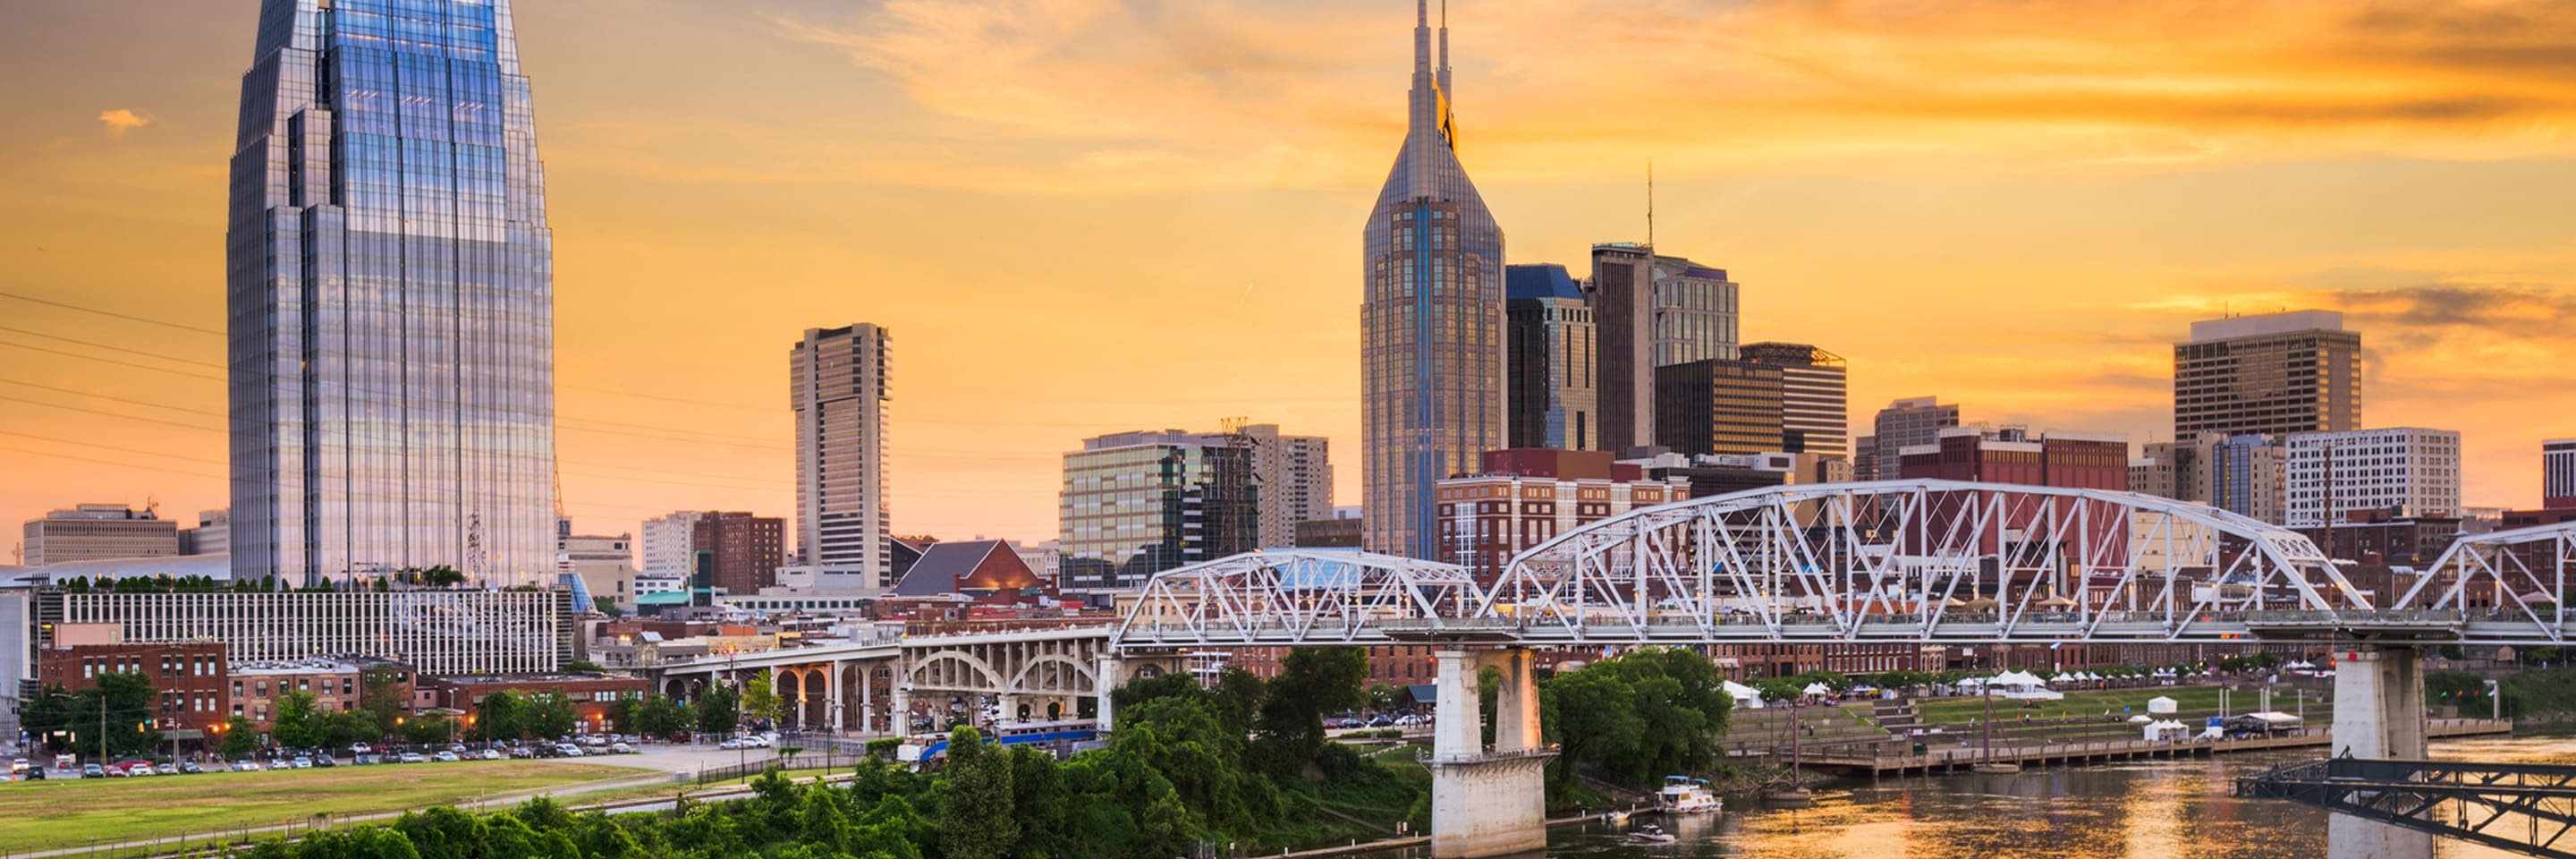 Hotels in Nashville